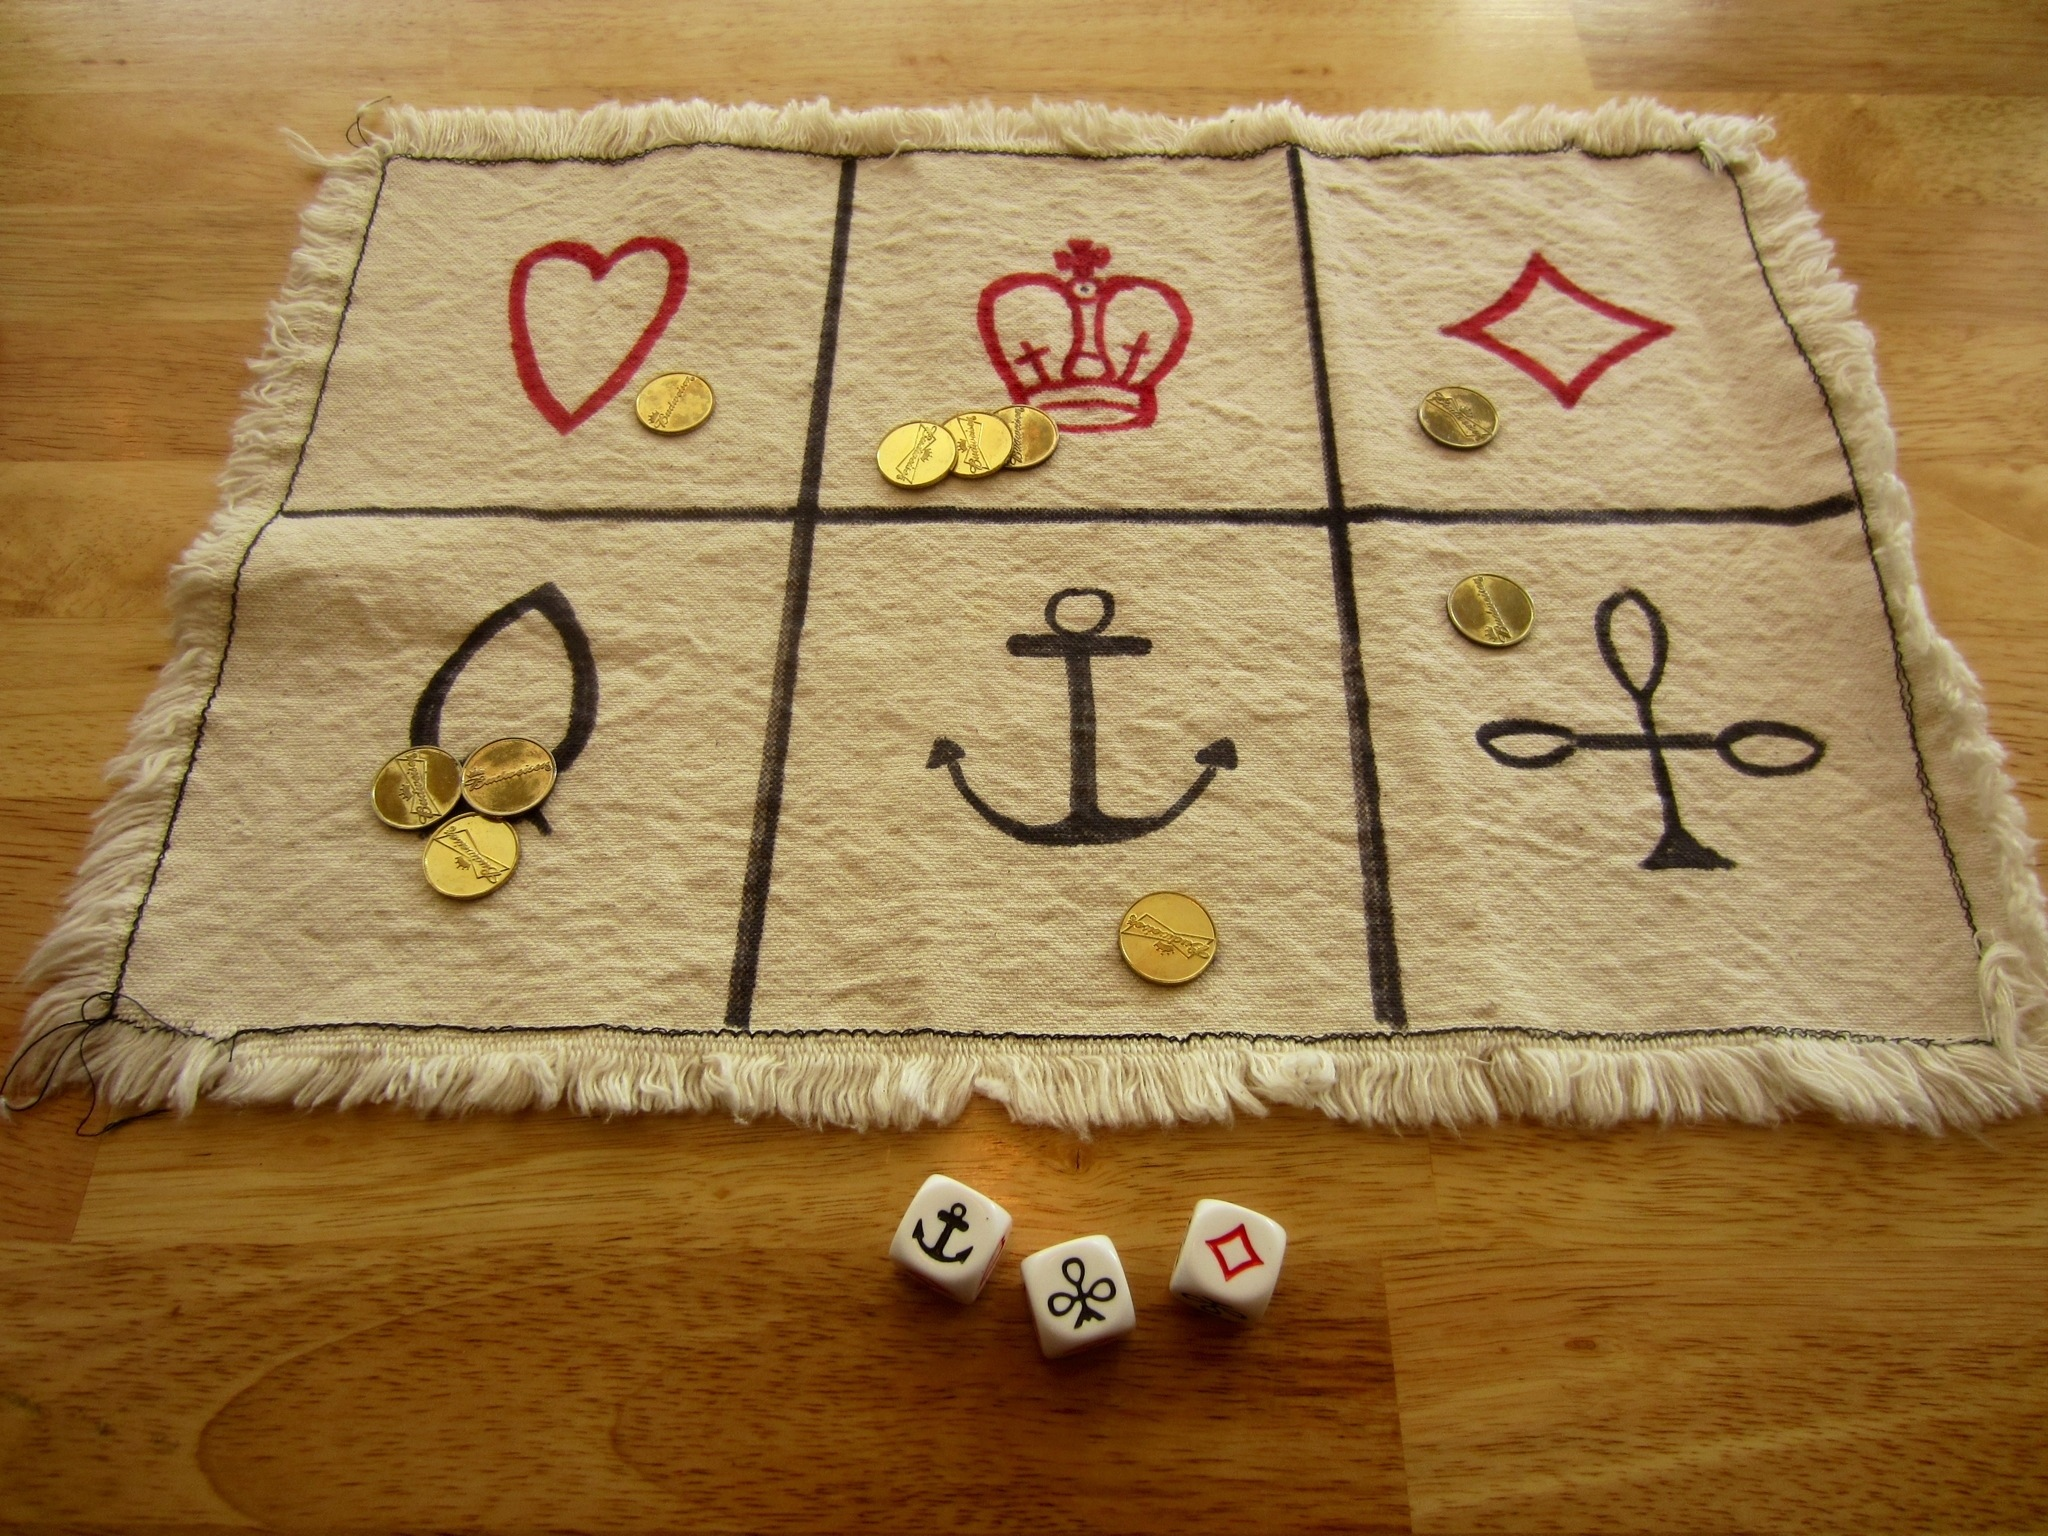 Crown and Anchor game